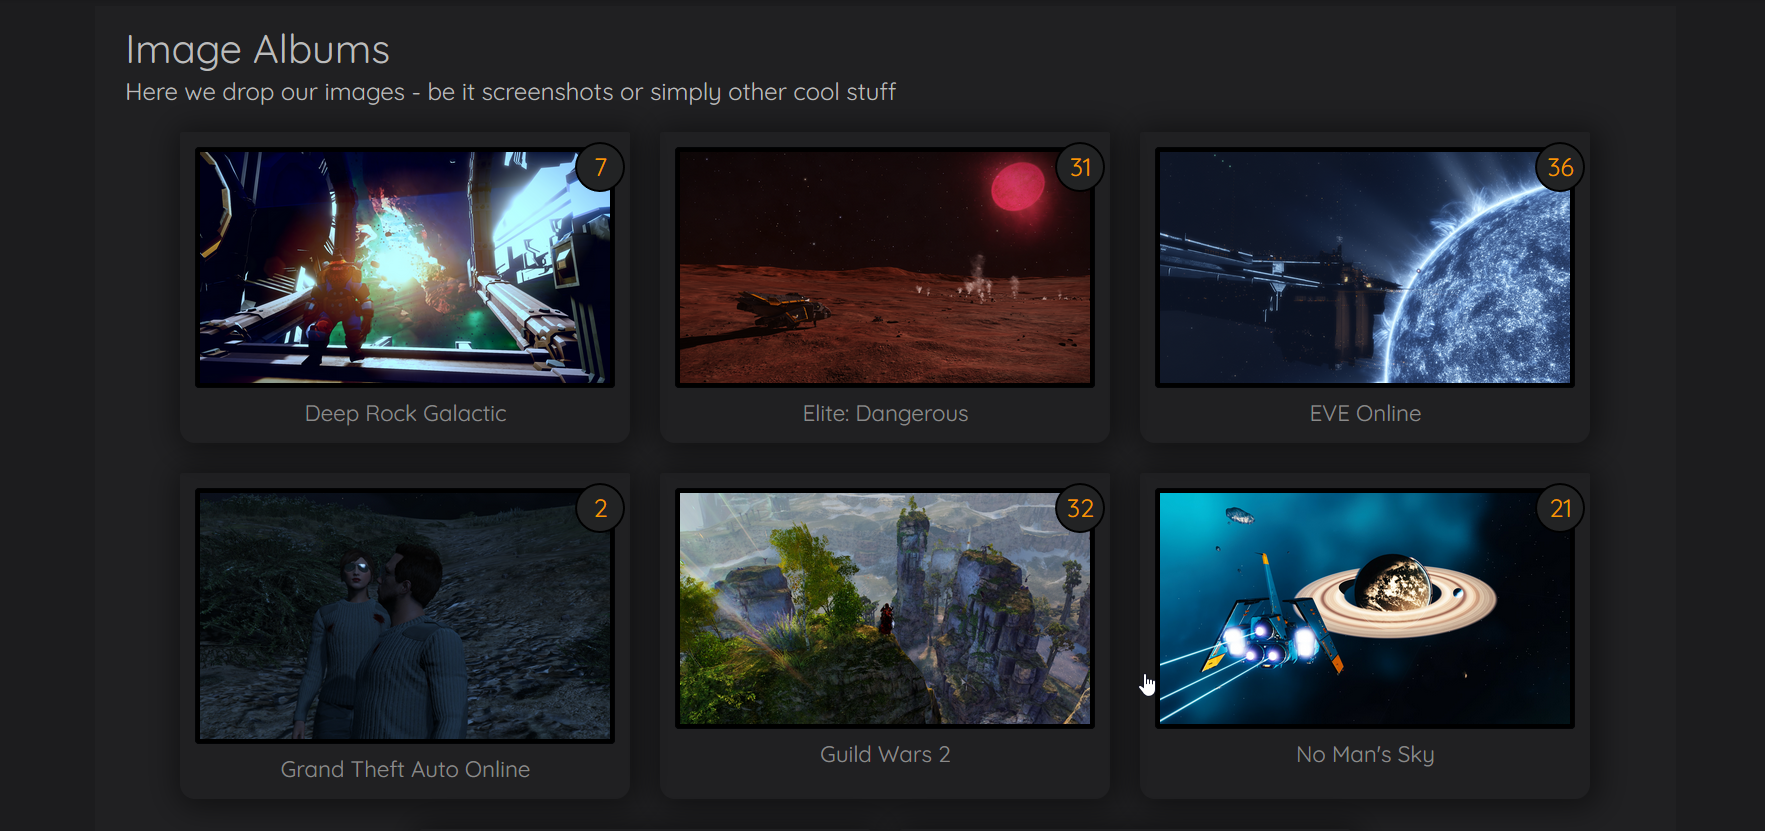 Gallery is now populated